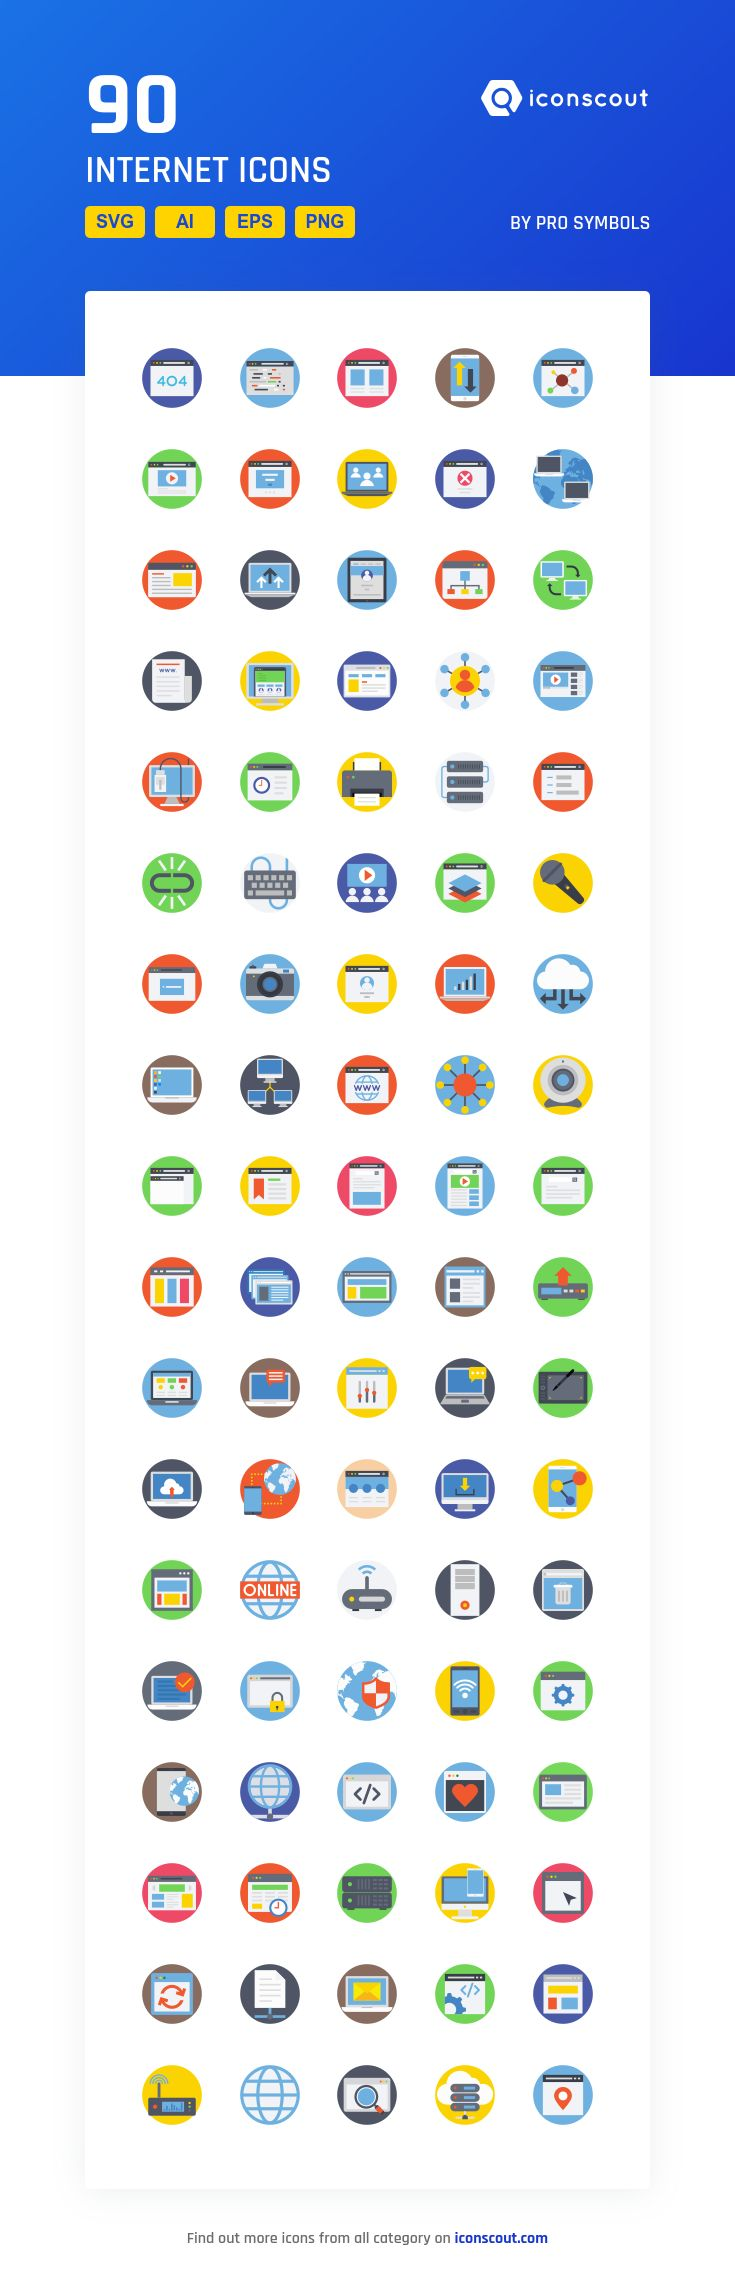 Internet  Icon Pack - 90 Flat Icons